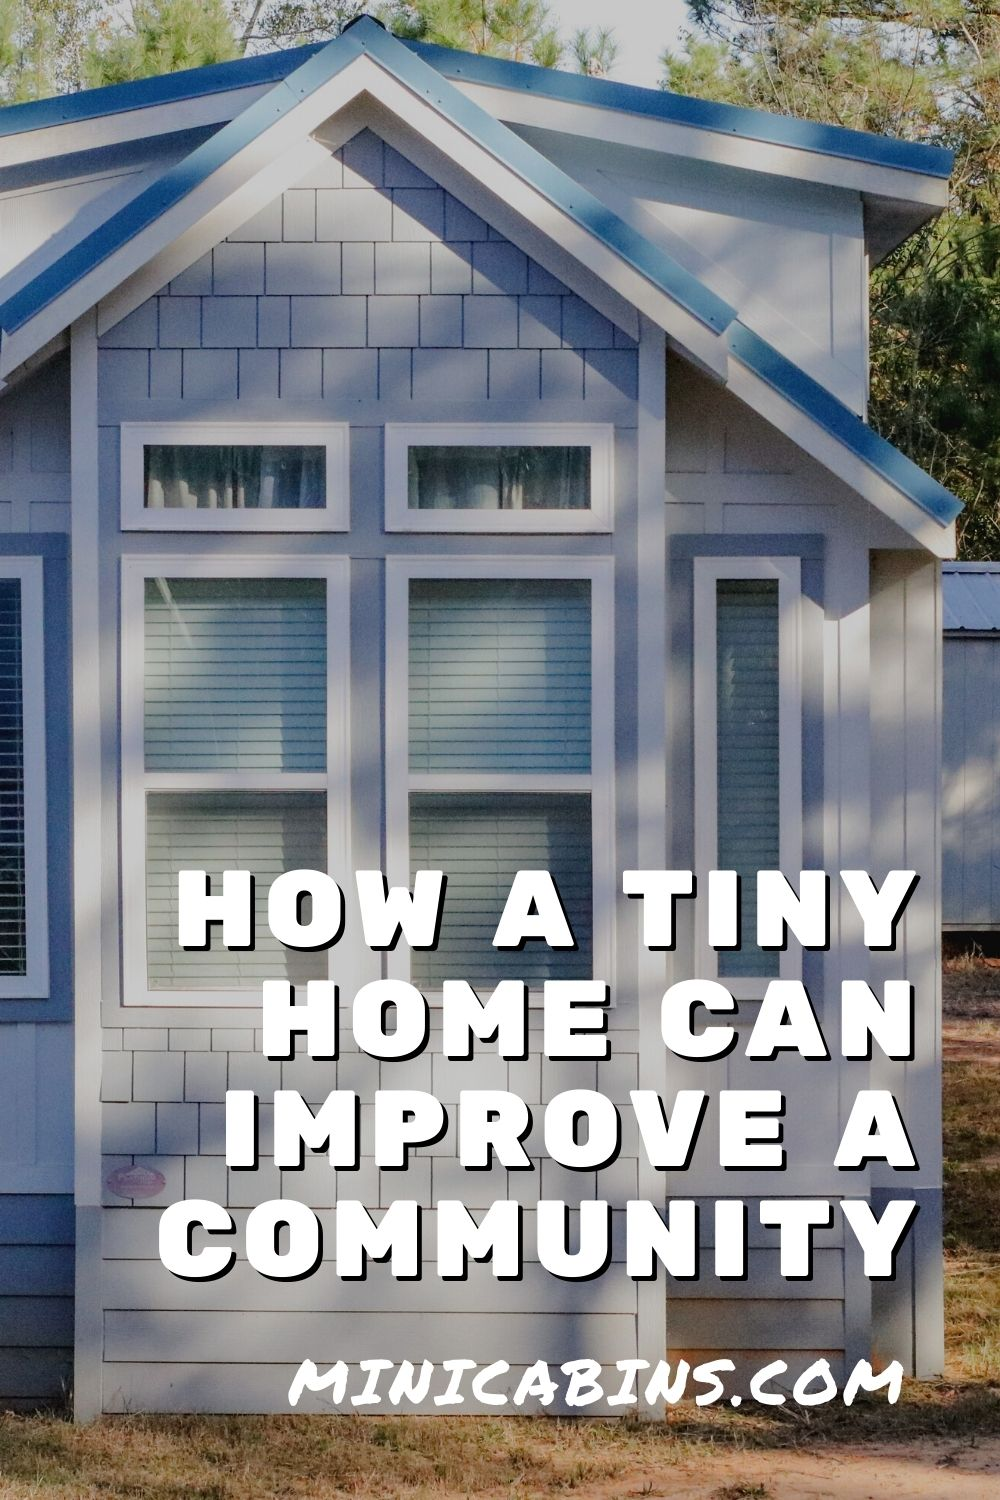 How a Tiny Home can Improve a Community